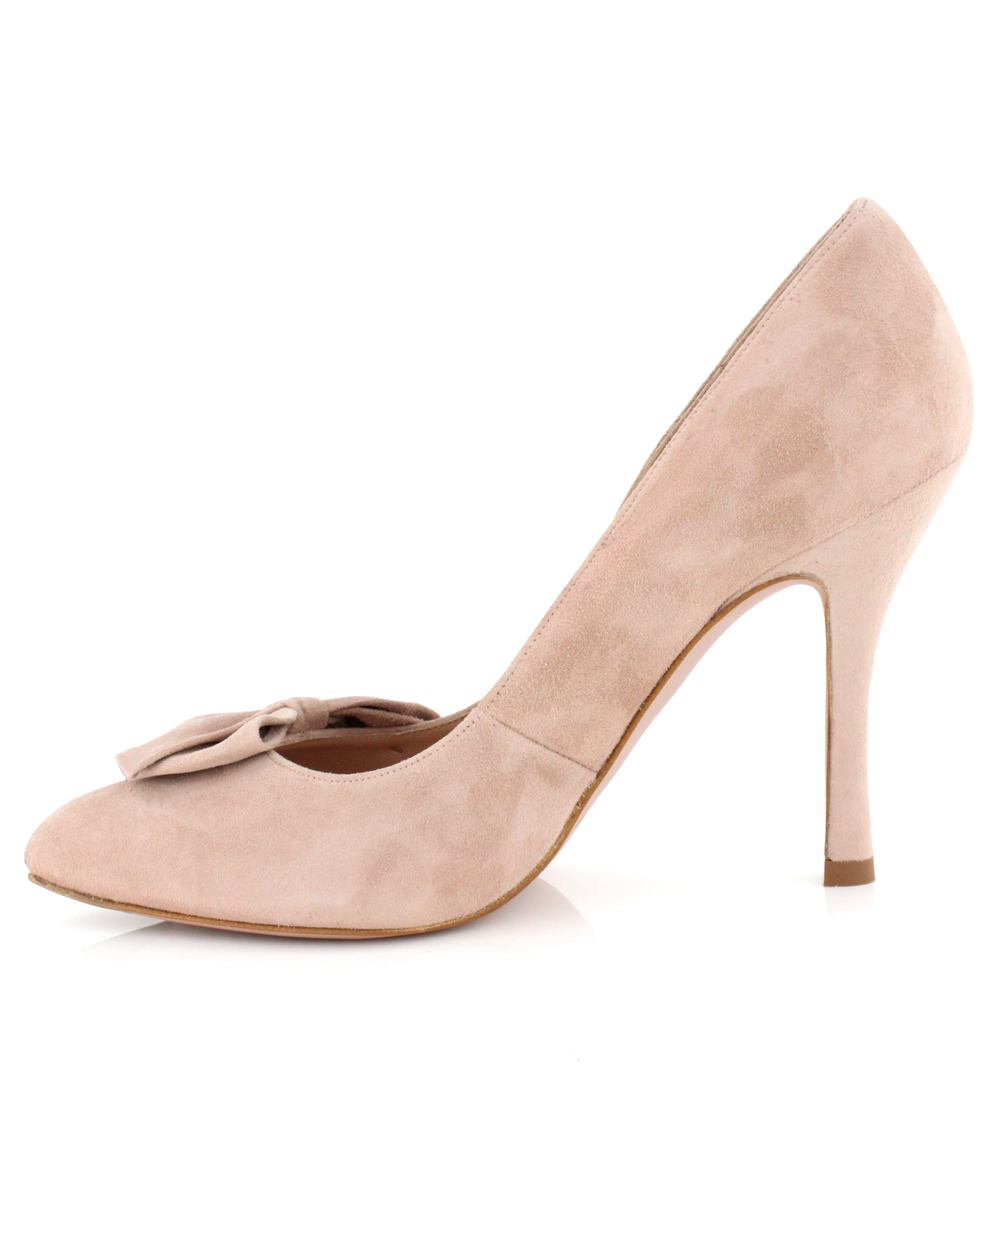 69b474235a Pura López Nude Suede Bow Pump in Natural - Lyst